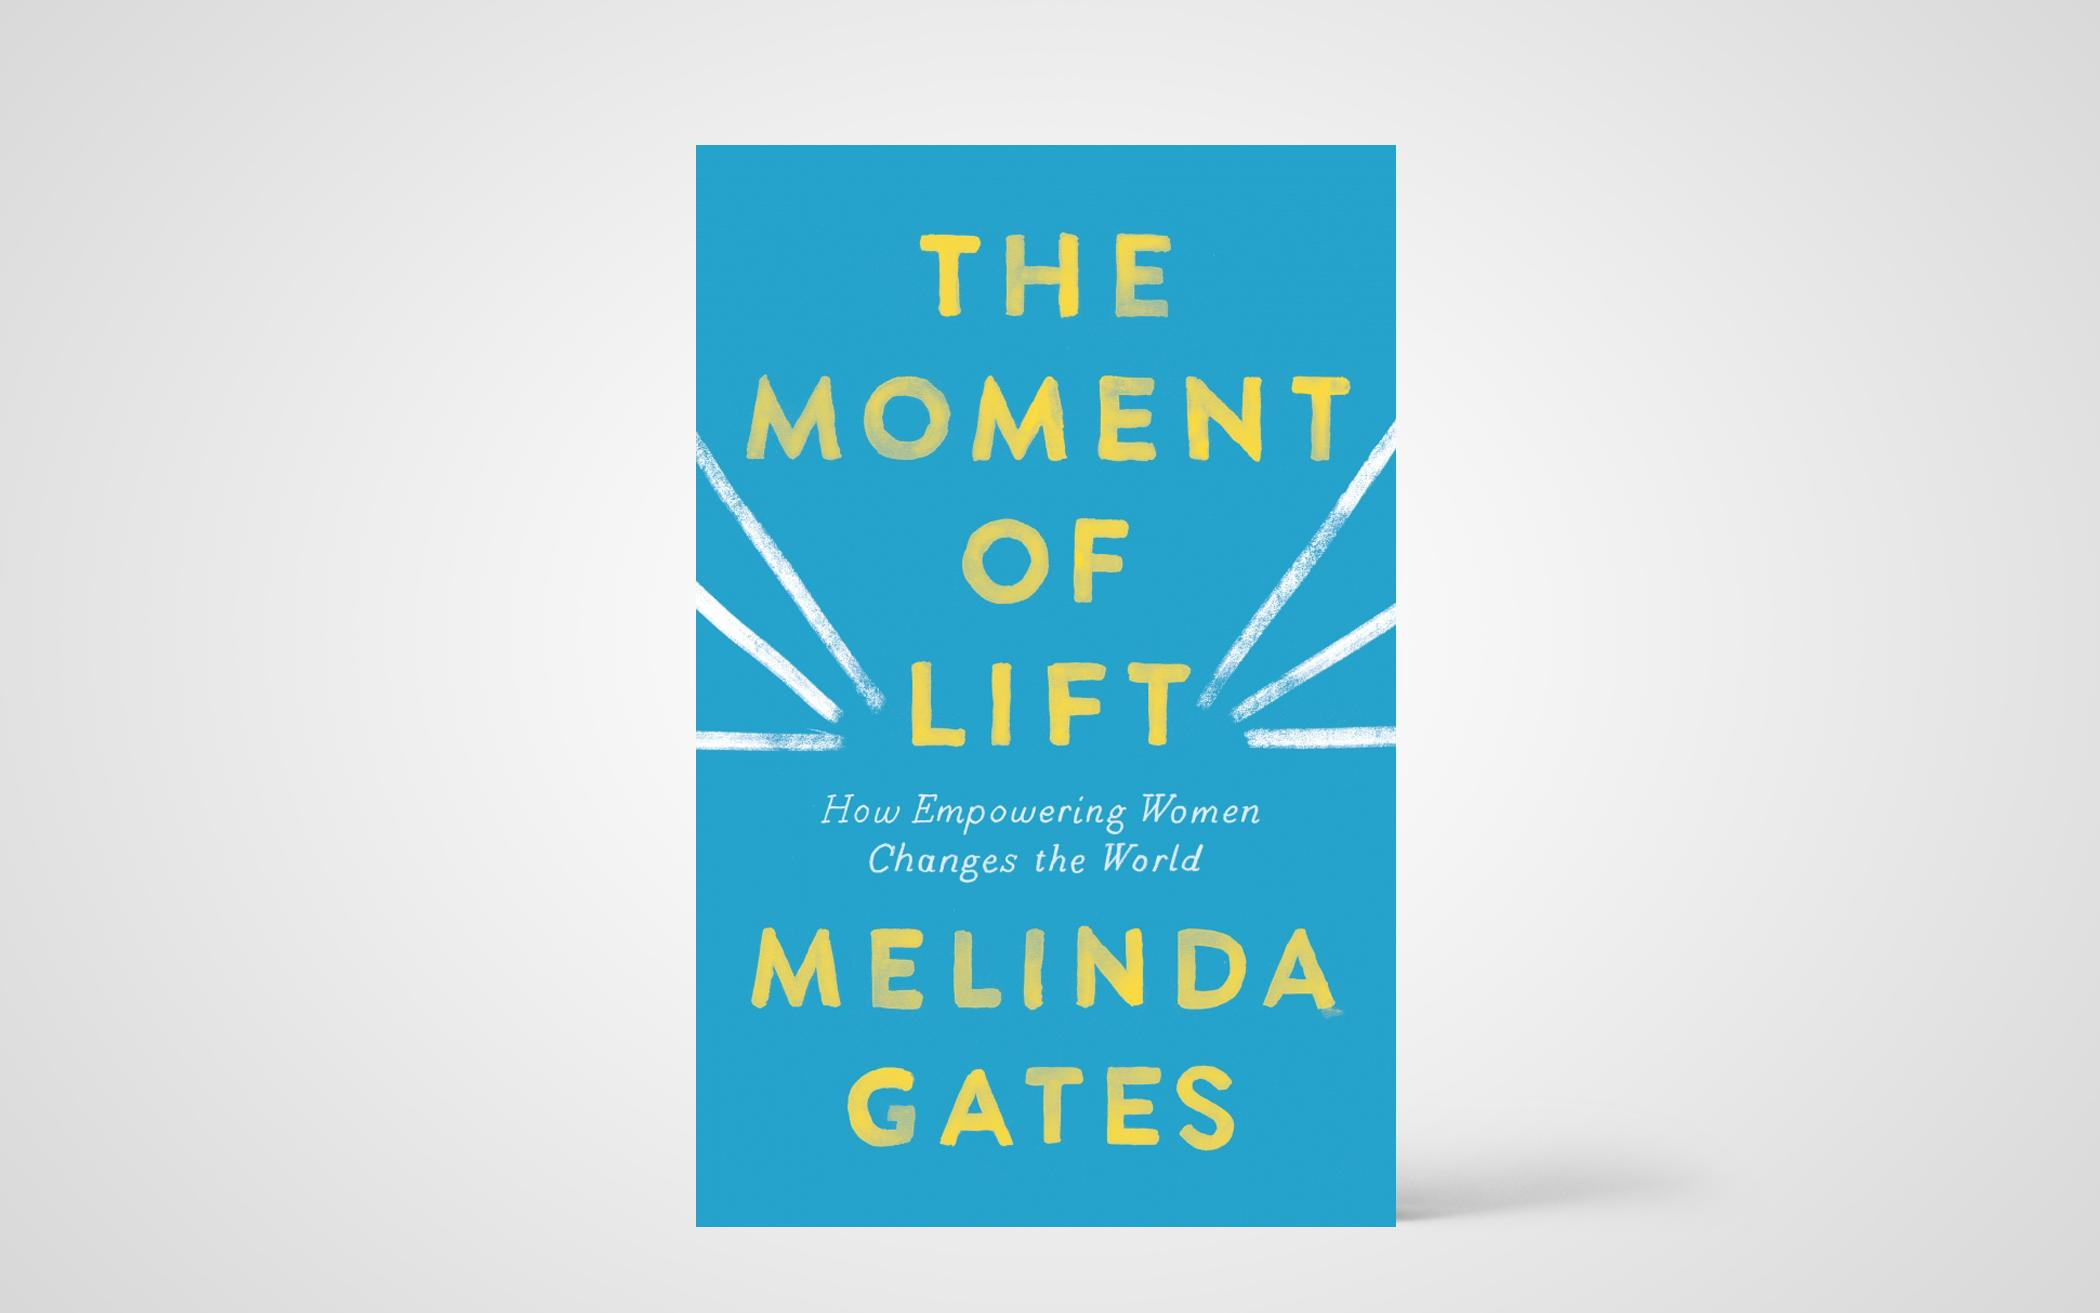 Moment of Lift: How Empowering Women Changes the World